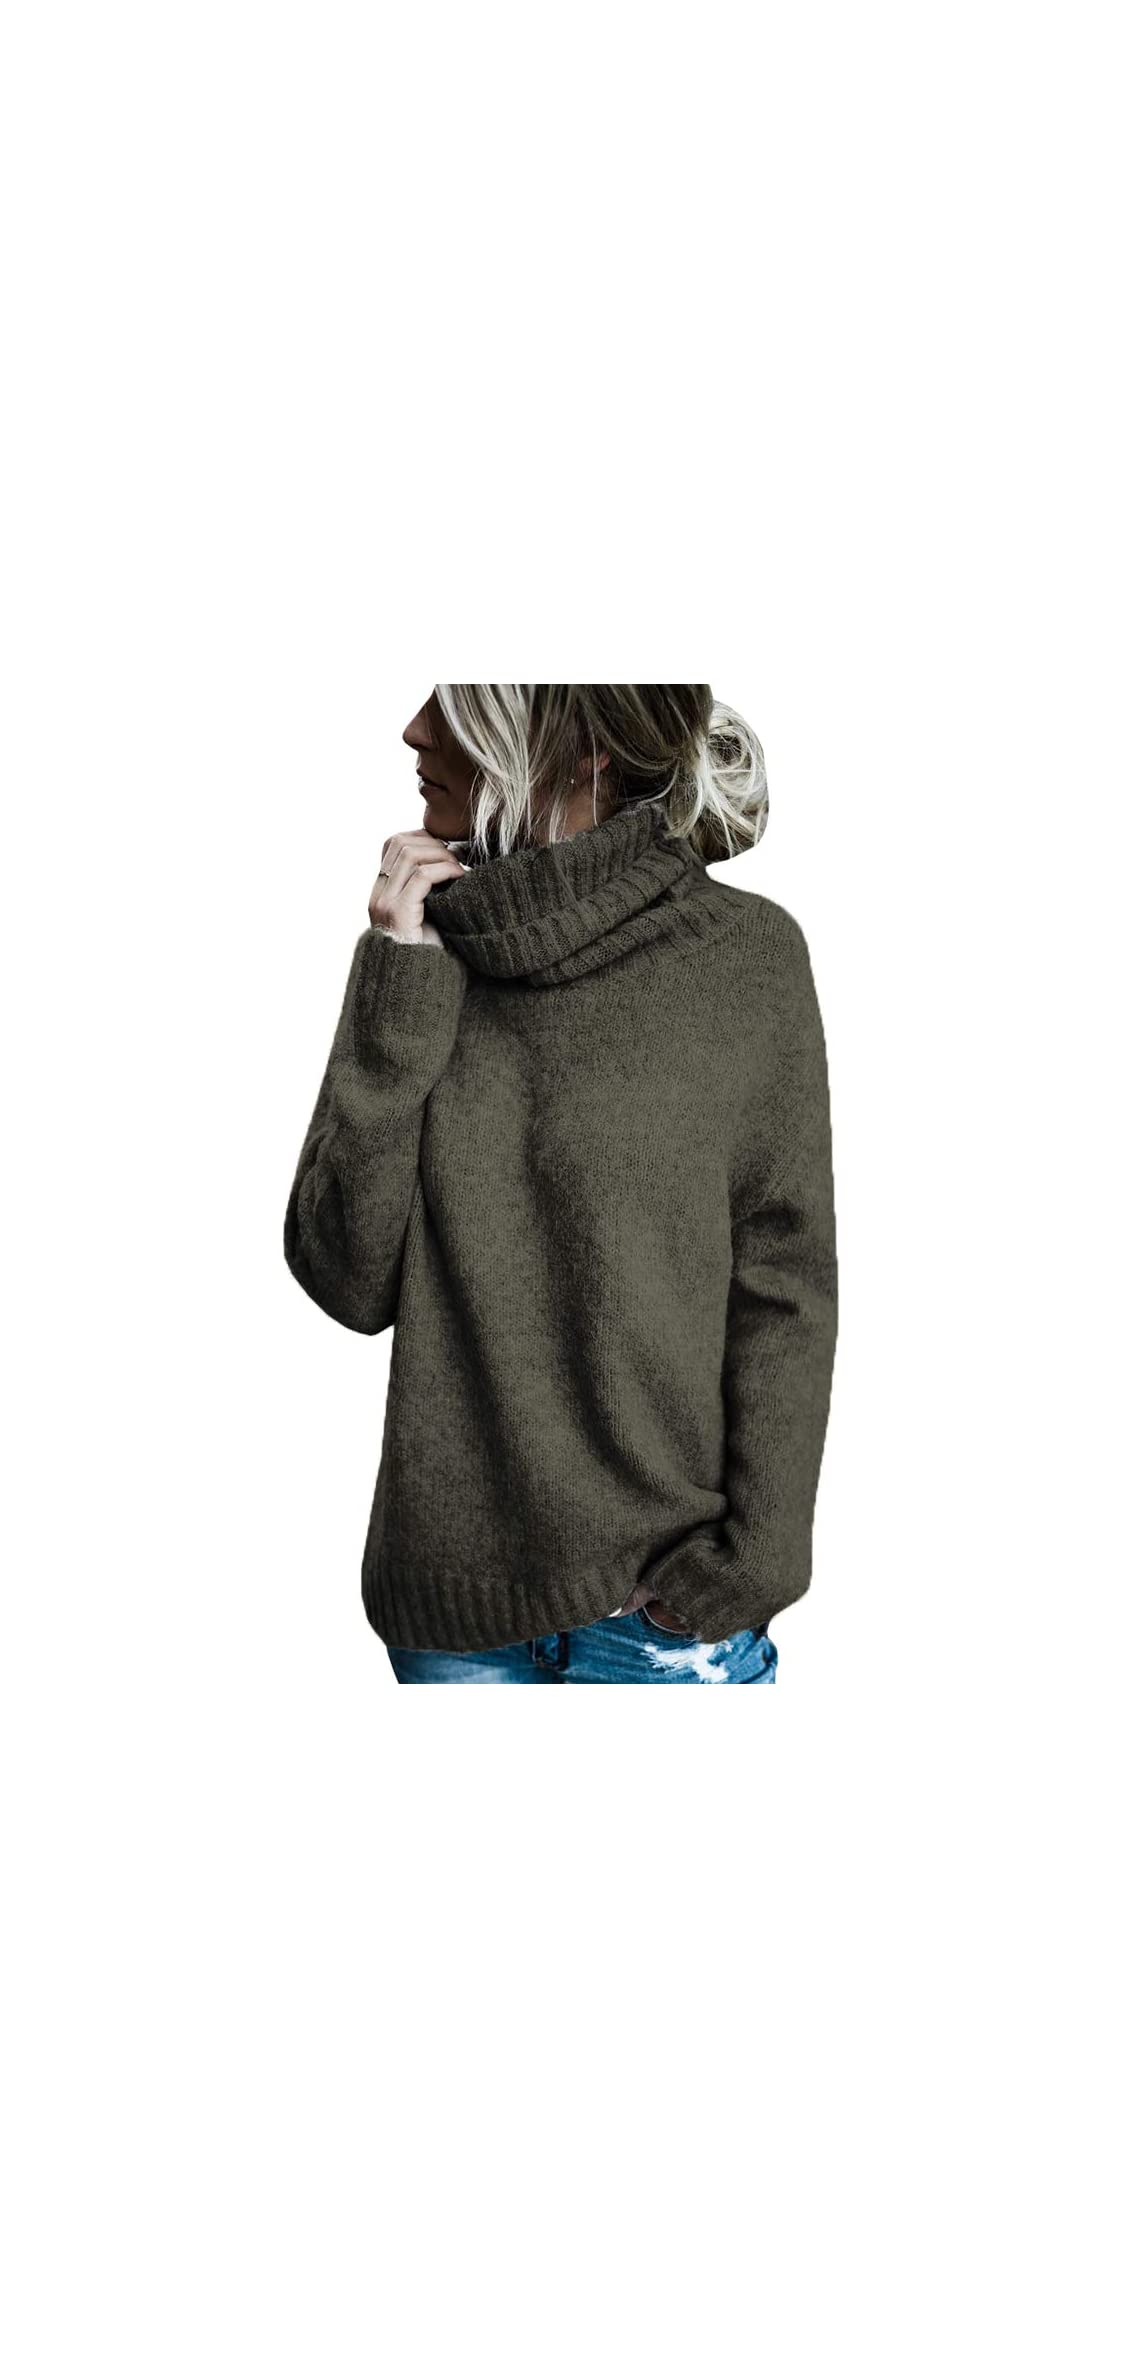 Womens Oversized Sweaters Turtleneck Batwing Sleeve